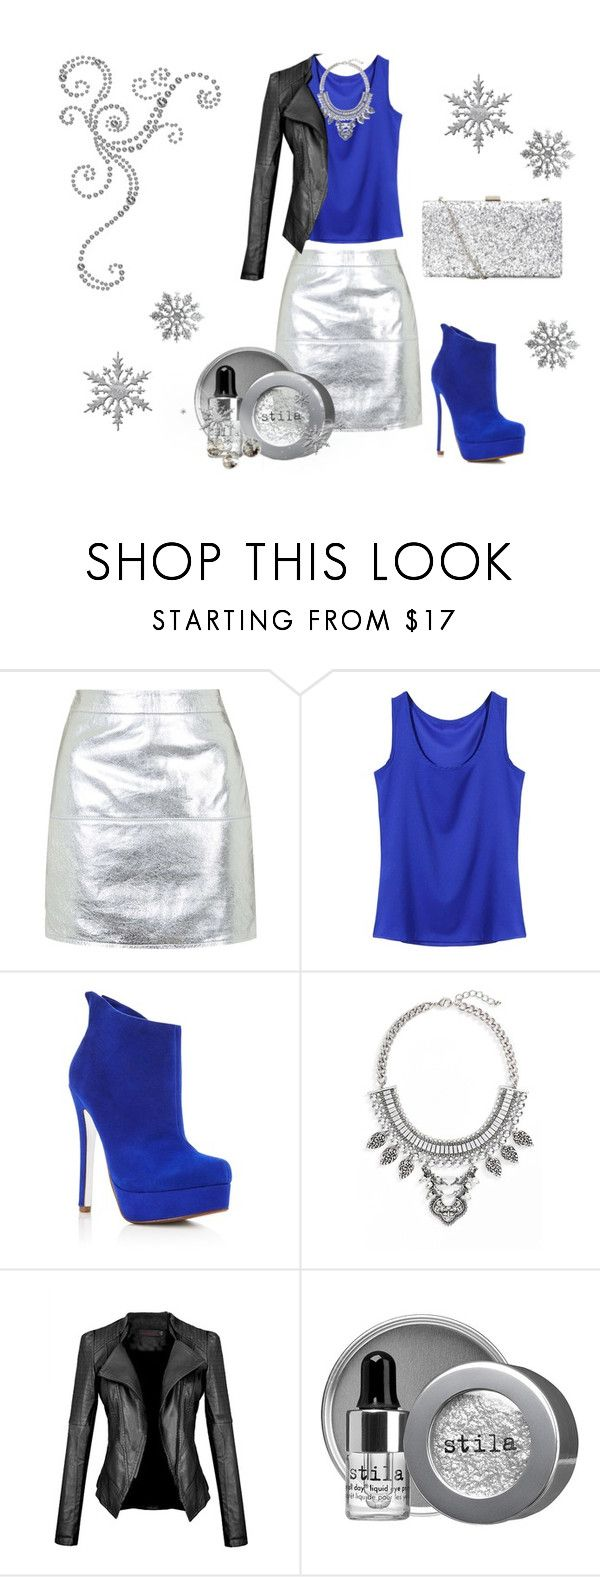 """""""~DreamShade~"""" by le-piano-argent ❤ liked on Polyvore featuring Topshop, Kristin Cavallari, Leith and Stila"""